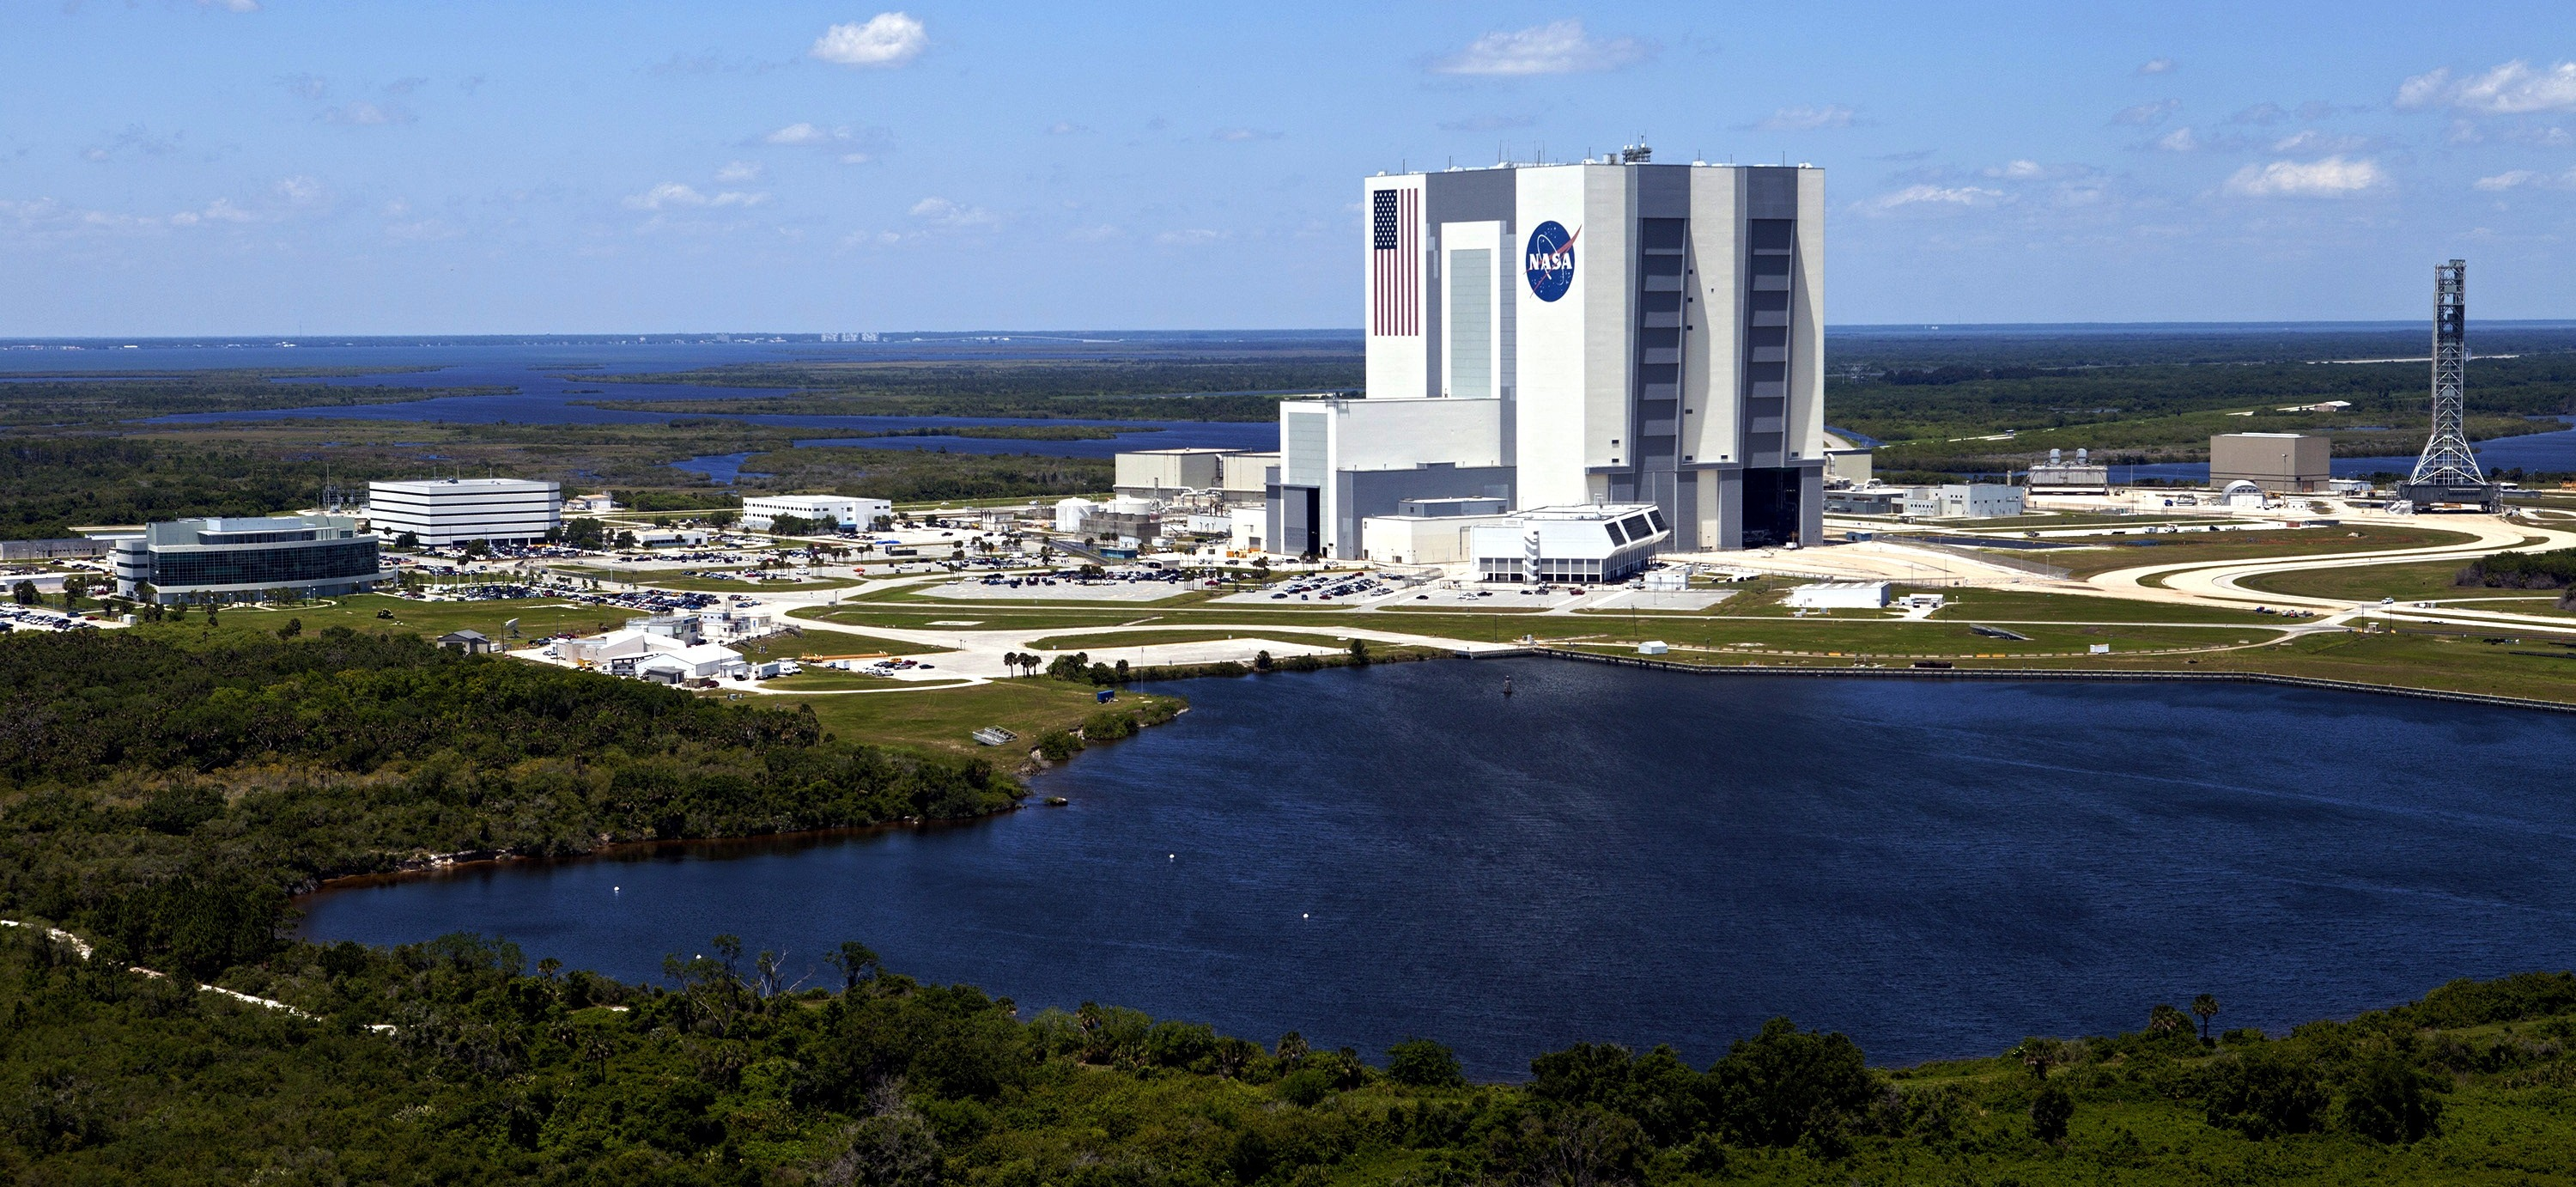 This aerial view shows the Vehicle Assembly Building, or VAB, and other buildings in the Launch Complex 39 area at NASA's Kennedy Space Center on May 6, 2013. The Launch Control Center is in front of the VAB. To the right is the mobile launcher that will be used to transport NASA's Space Launch System rocket and the Orion crew capsule to Launch Pad 39B. Upgrades are underway at Pad B and other facilities in the Launch Complex 39 area. The Ground Systems Development and Operations Program office at Kennedy is leading the center's transformation from a historically government-only launch complex to a spaceport that can safely handle a variety of rockets and spacecraft. Image Credit: NASA/Kim Shiflett